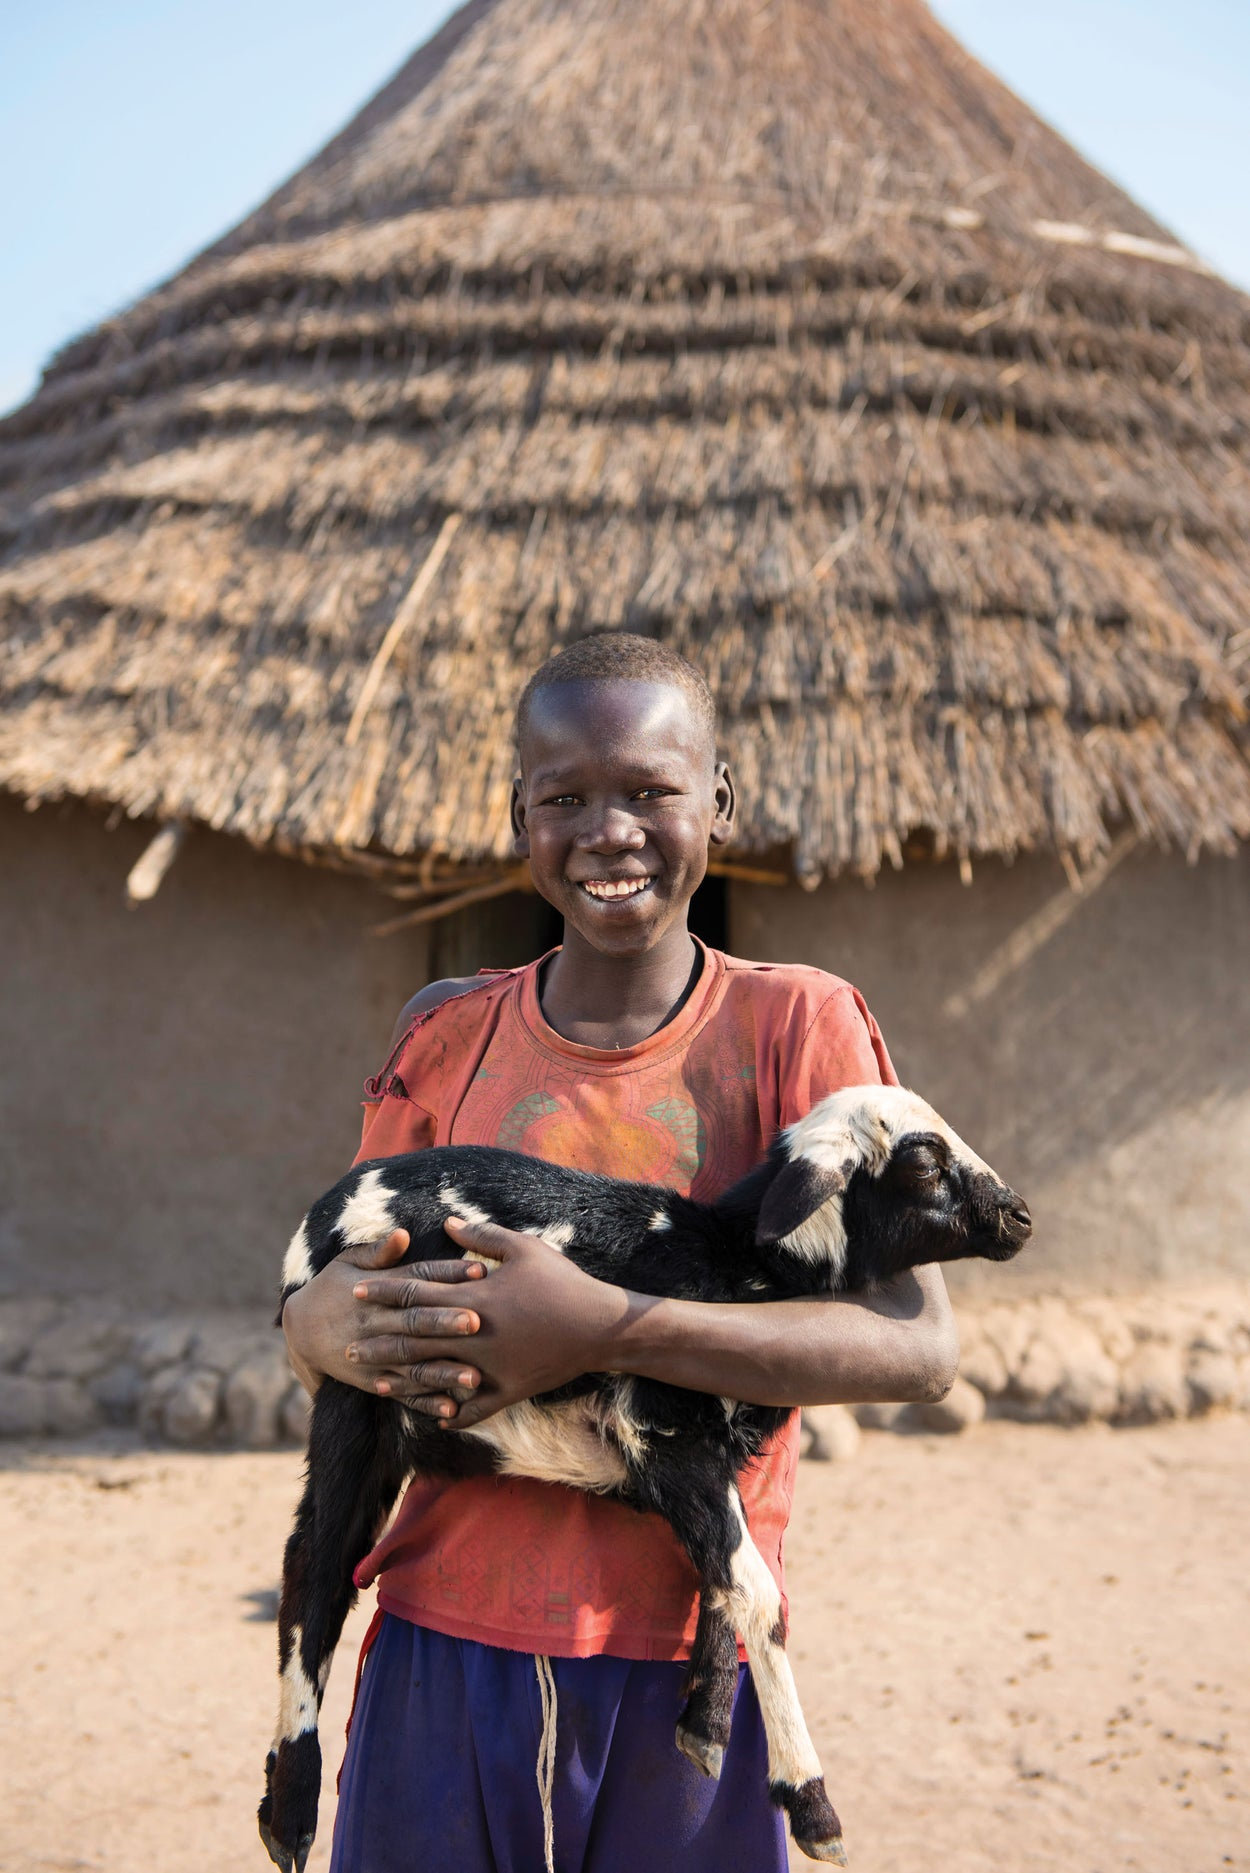 A boy in South Sudan holds a goat.